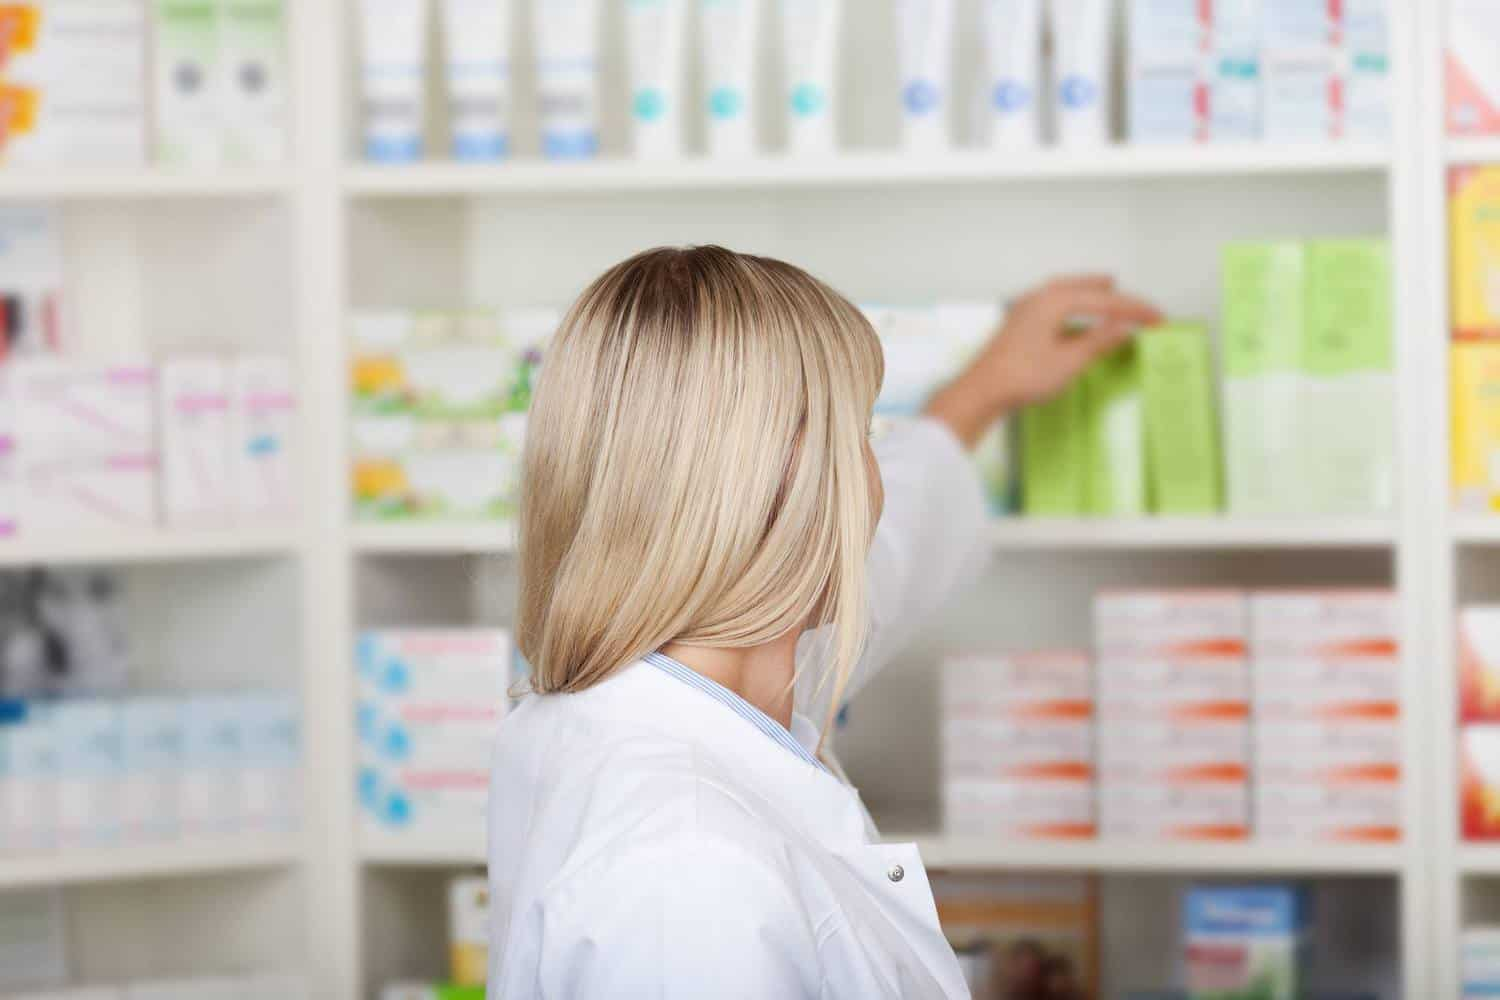 A pharmacist picking up medicine in a pharmacy.